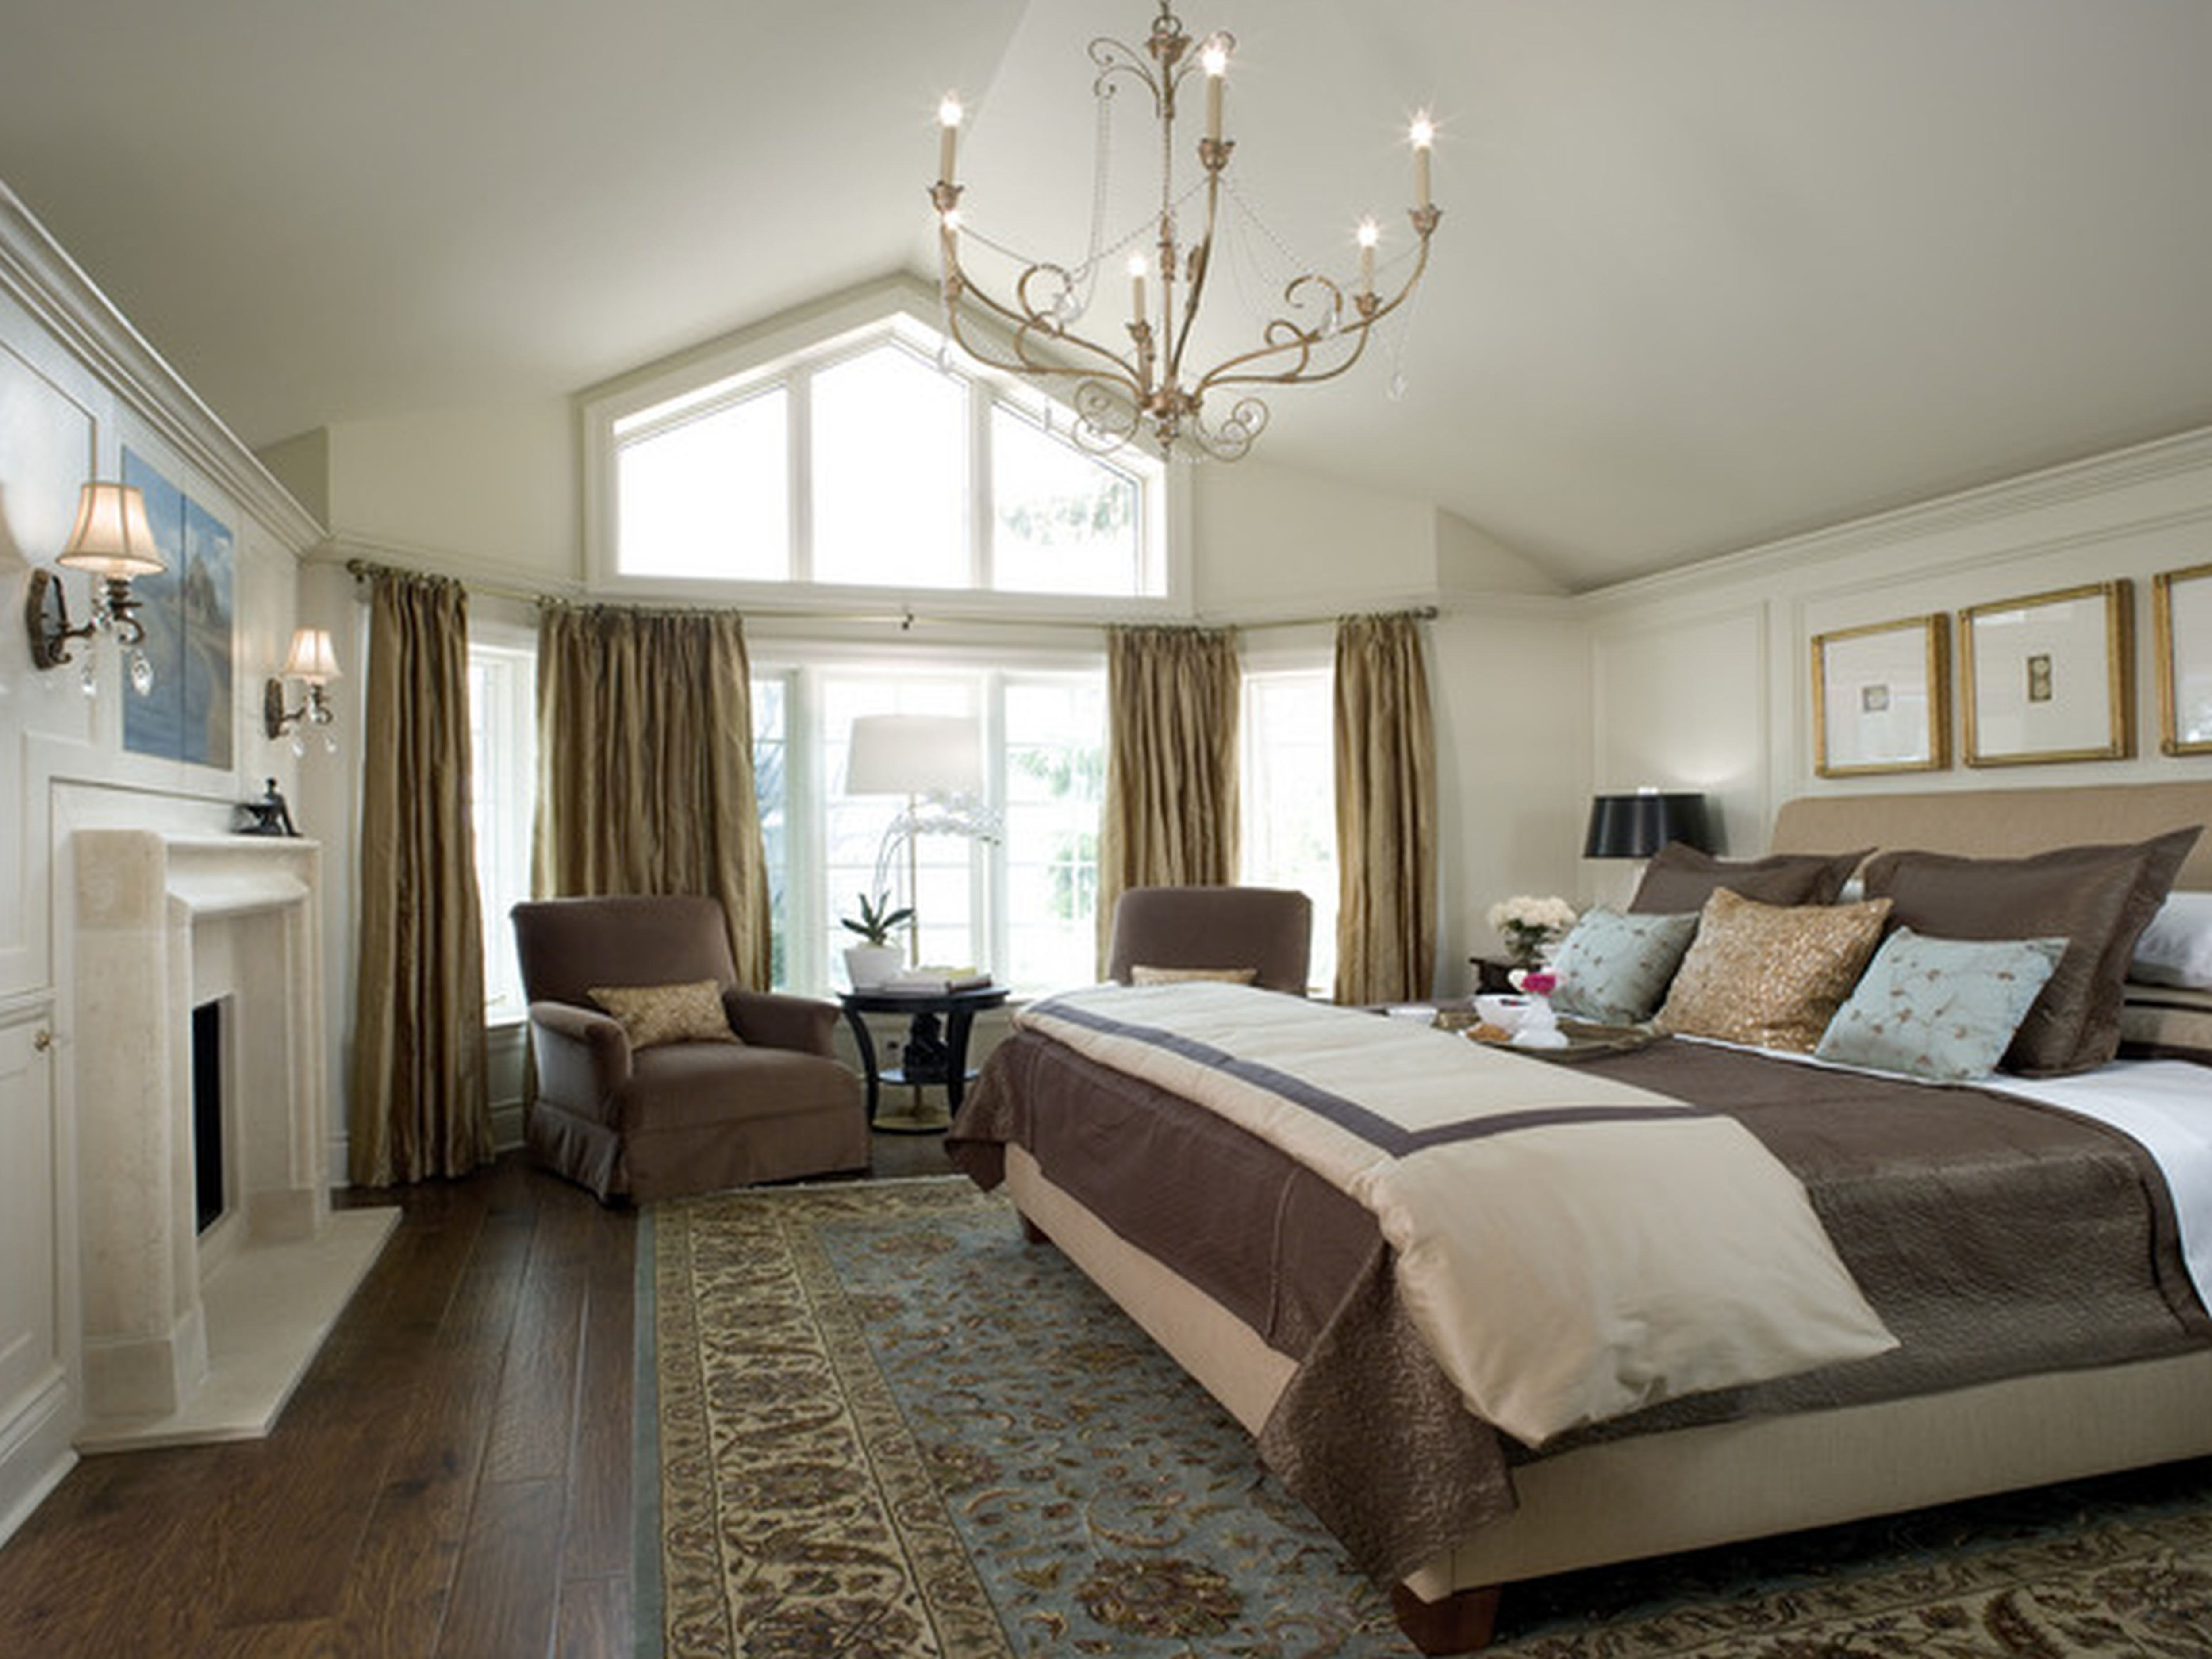 modern traditional bedroom ideas photo - 4